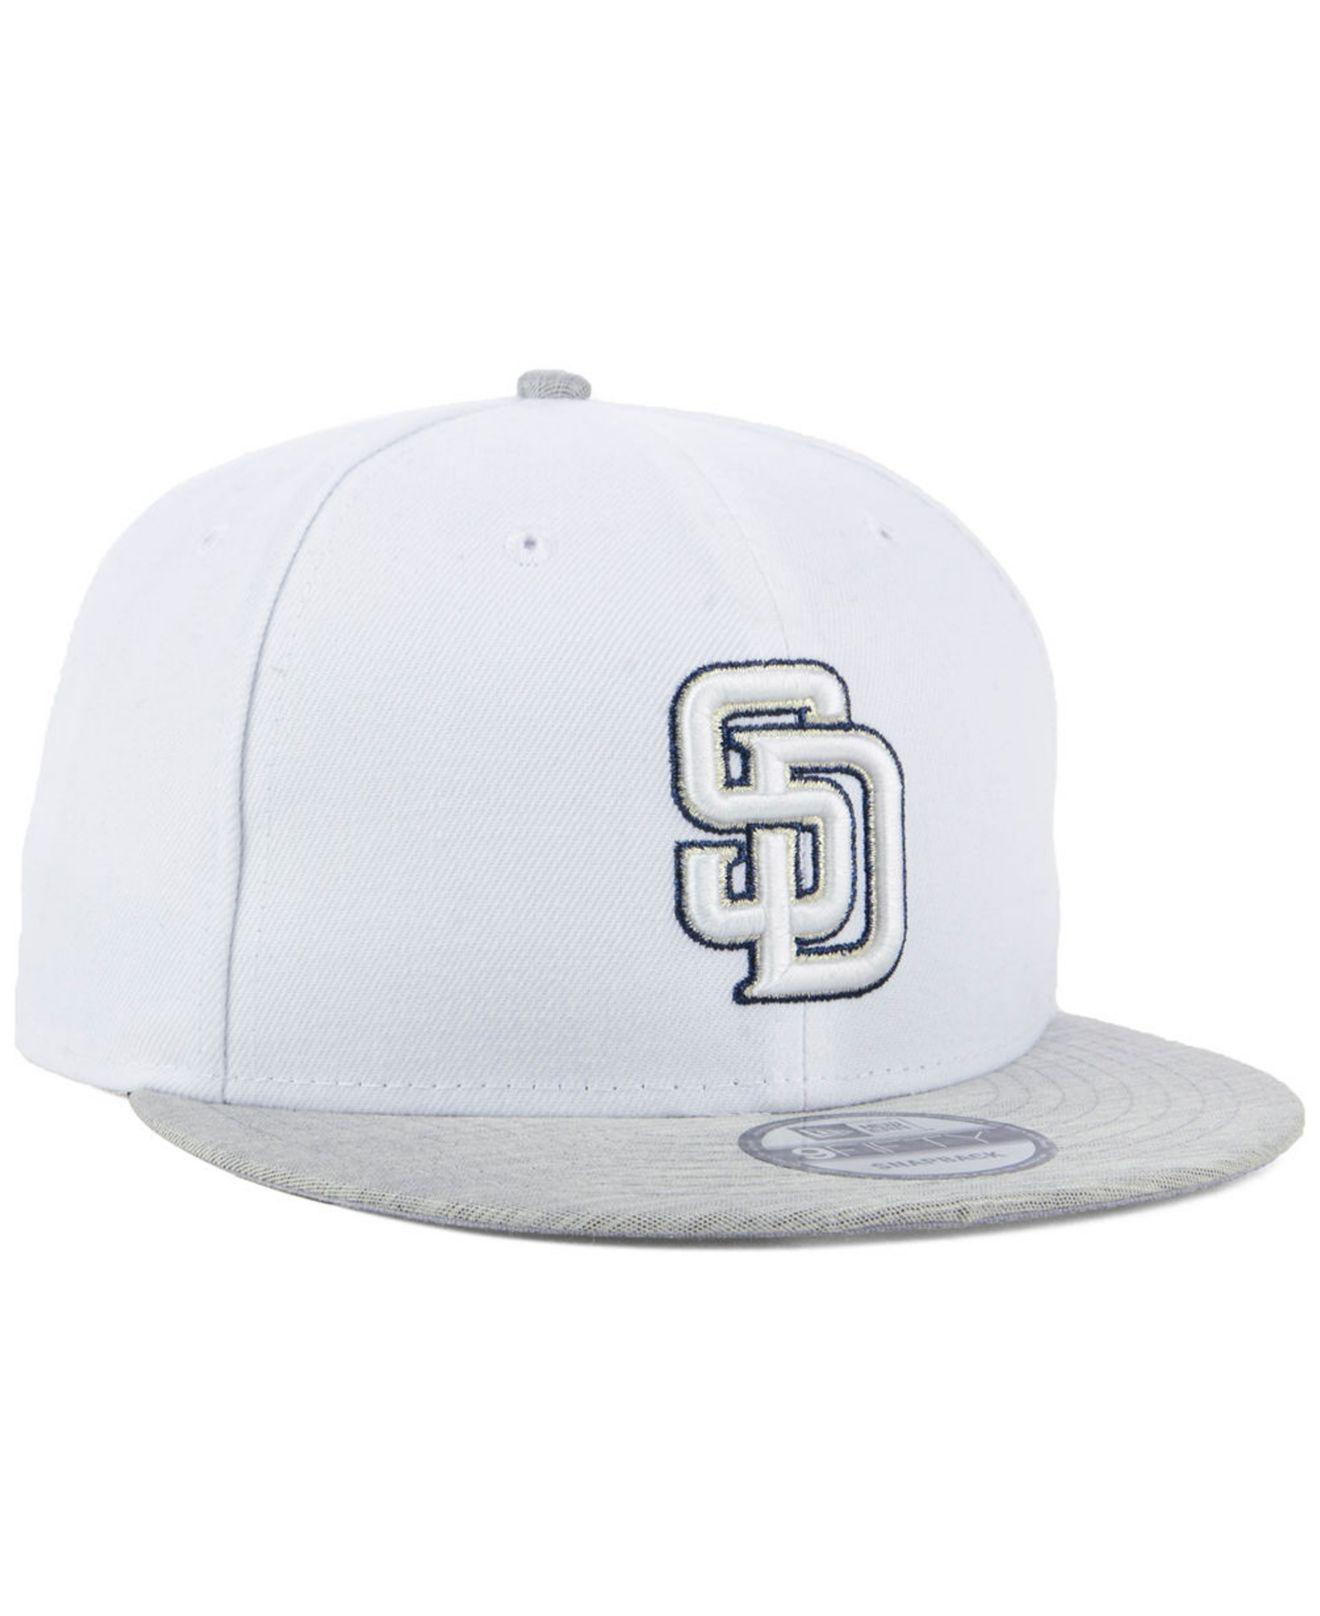 newest collection 64fd1 5845d ... coupon code for san diego padres bright heather 9fifty snapback cap for men  lyst. view